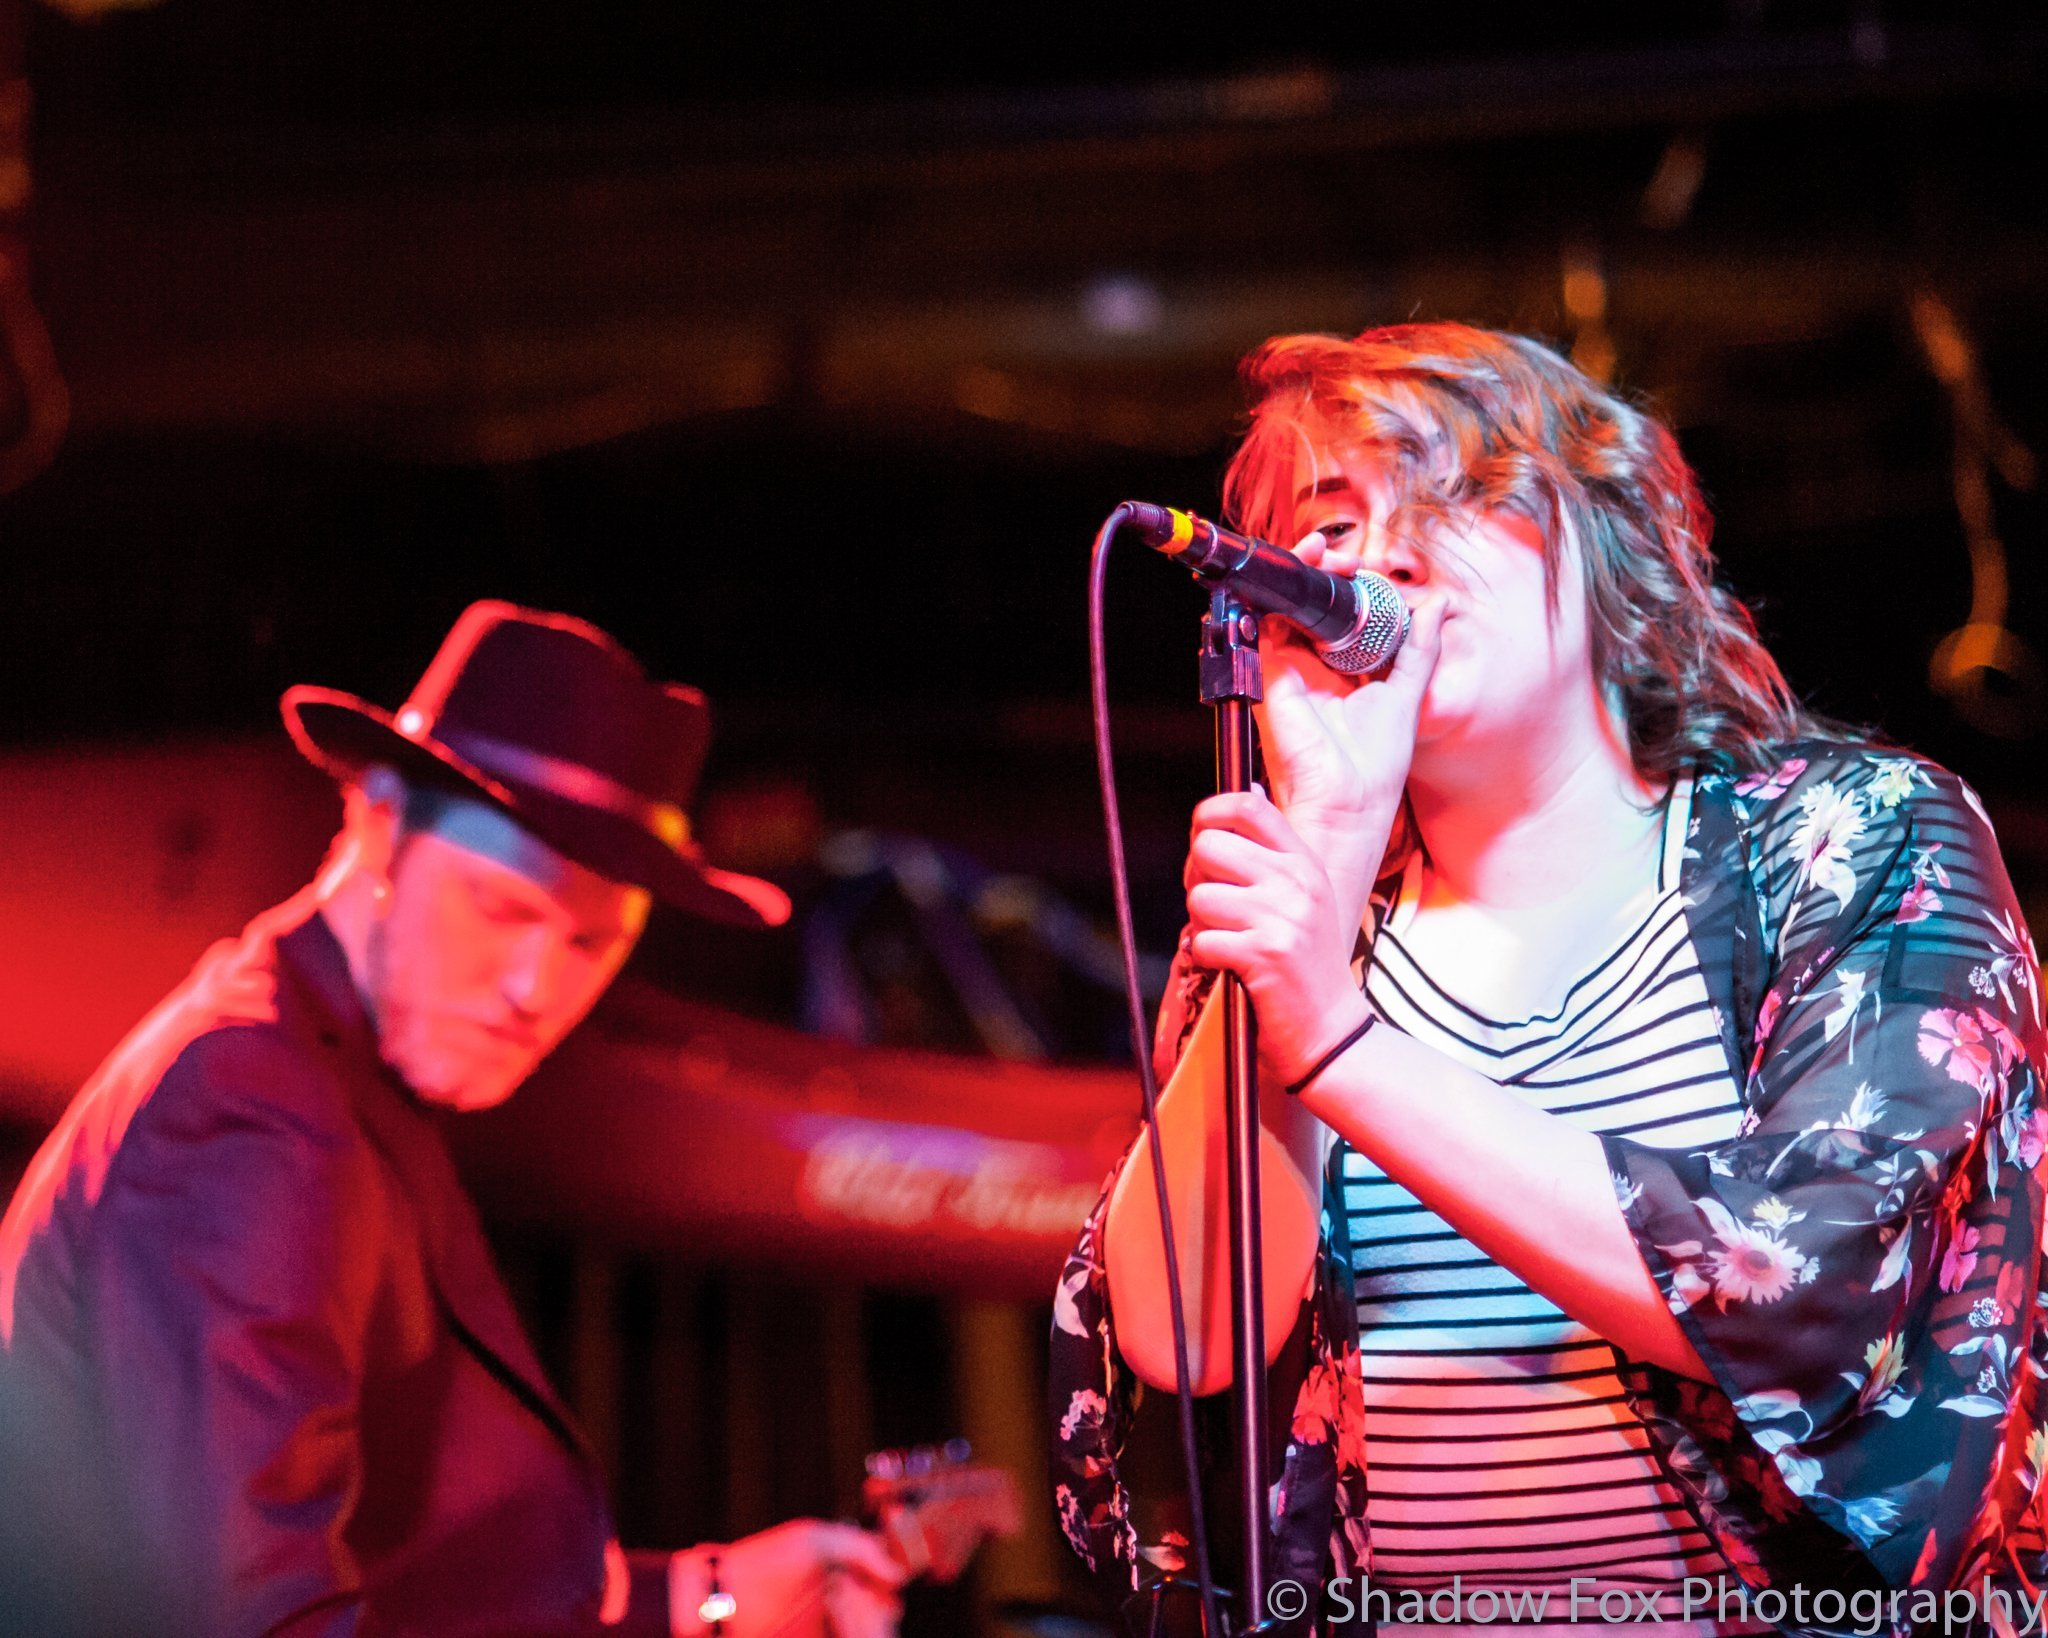 The Funky Prettys playing at 404's CD release show at Spicoli's in Waterloo, Iowa